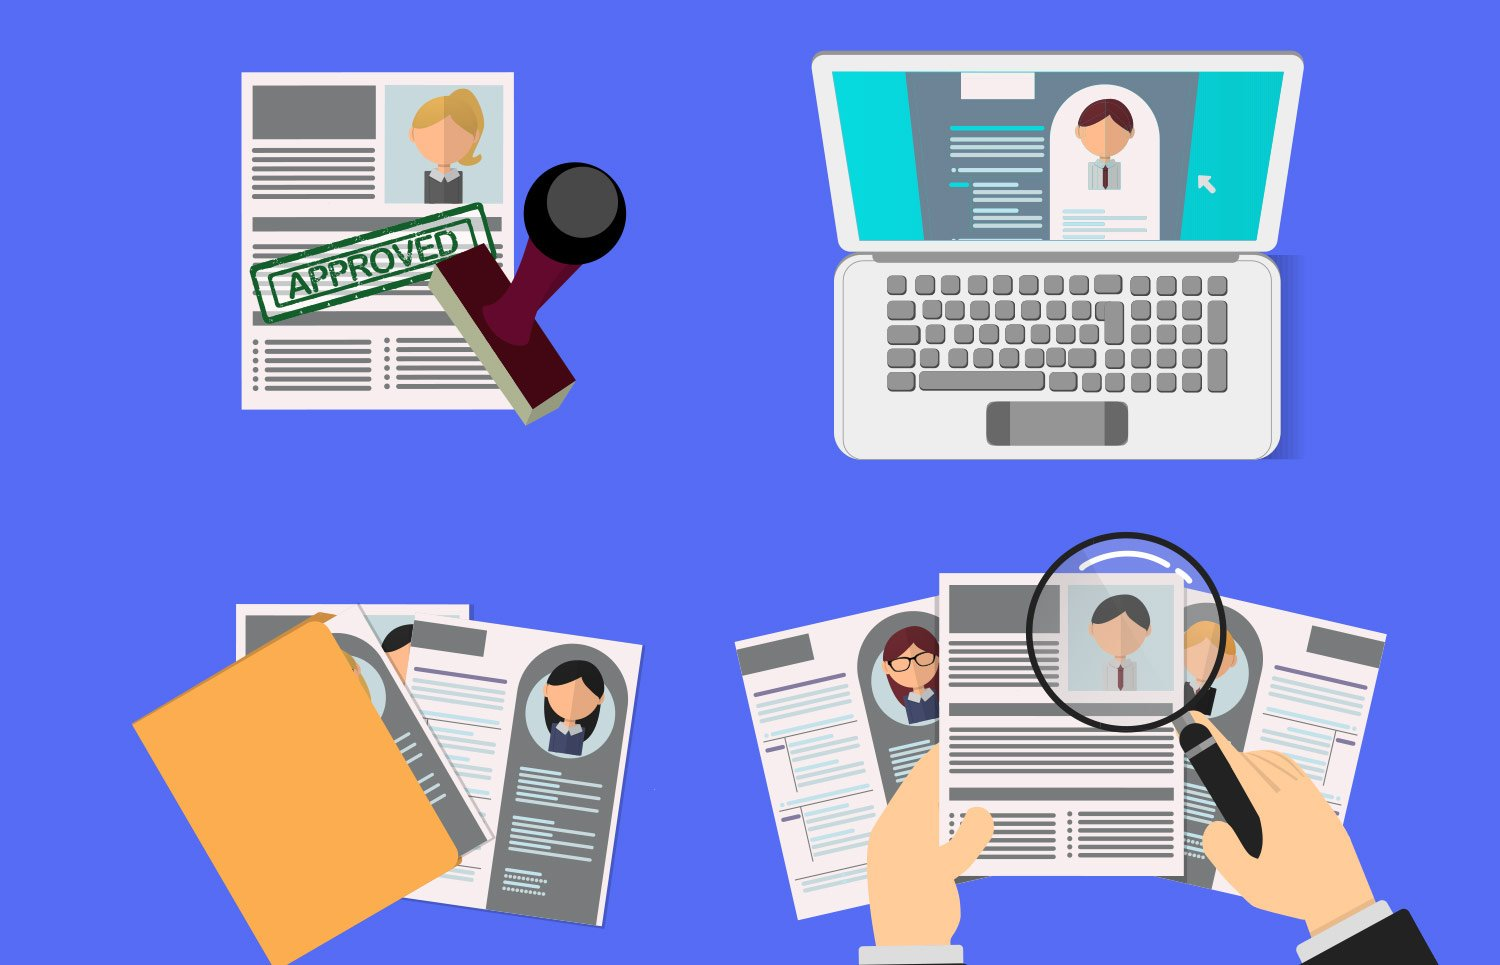 Vector illustration of person inspecting resumes